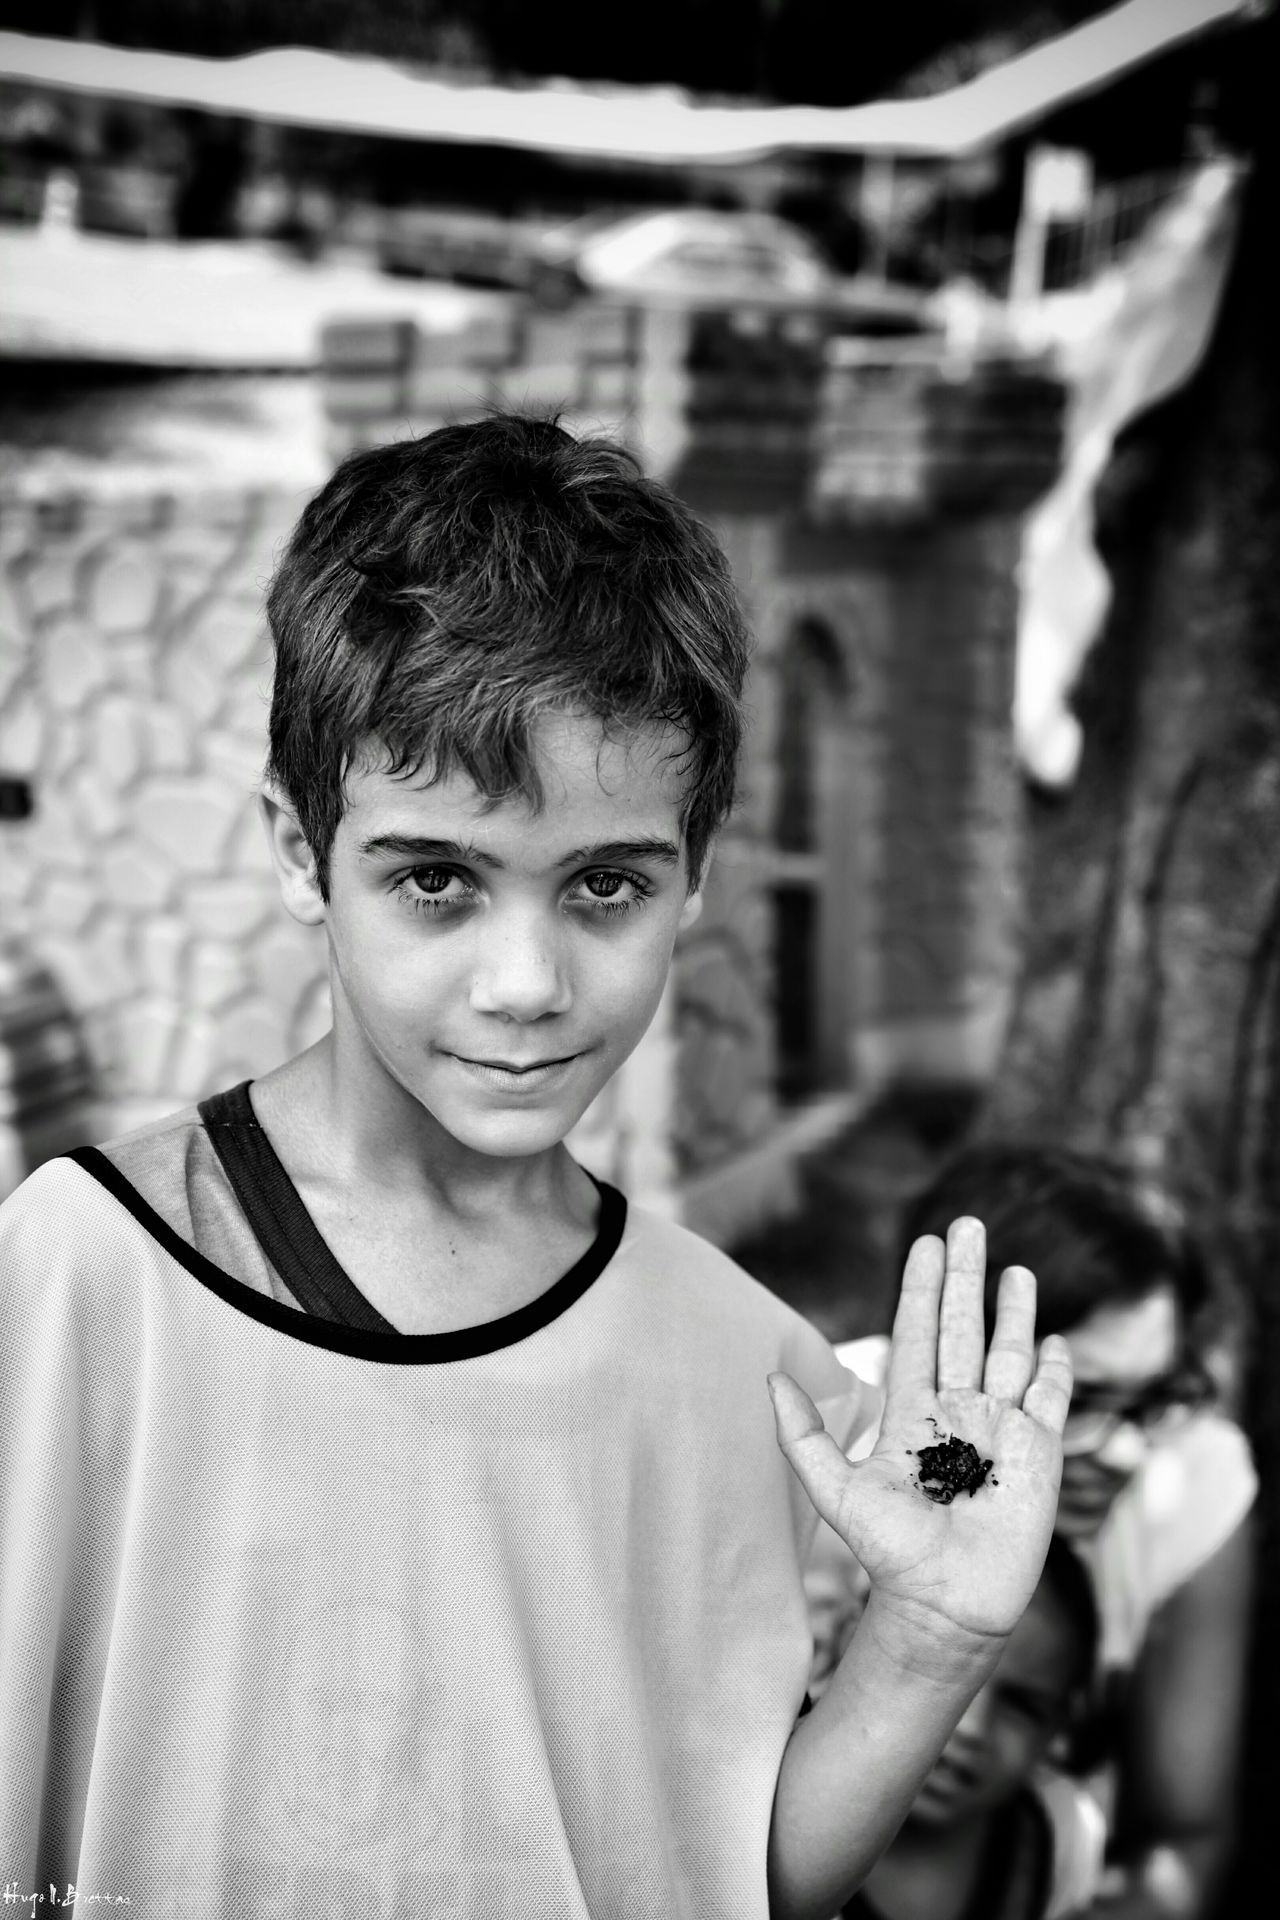 Portrait Looking At Camera One Person Real People Smiling Front View Leisure Activity Lifestyles Childhood Happiness Cheerful Freshness Children Photography Social Documentary School Children Black And White Black & White Social Photography Boys Photography The Portraitist - 2017 EyeEm Awards